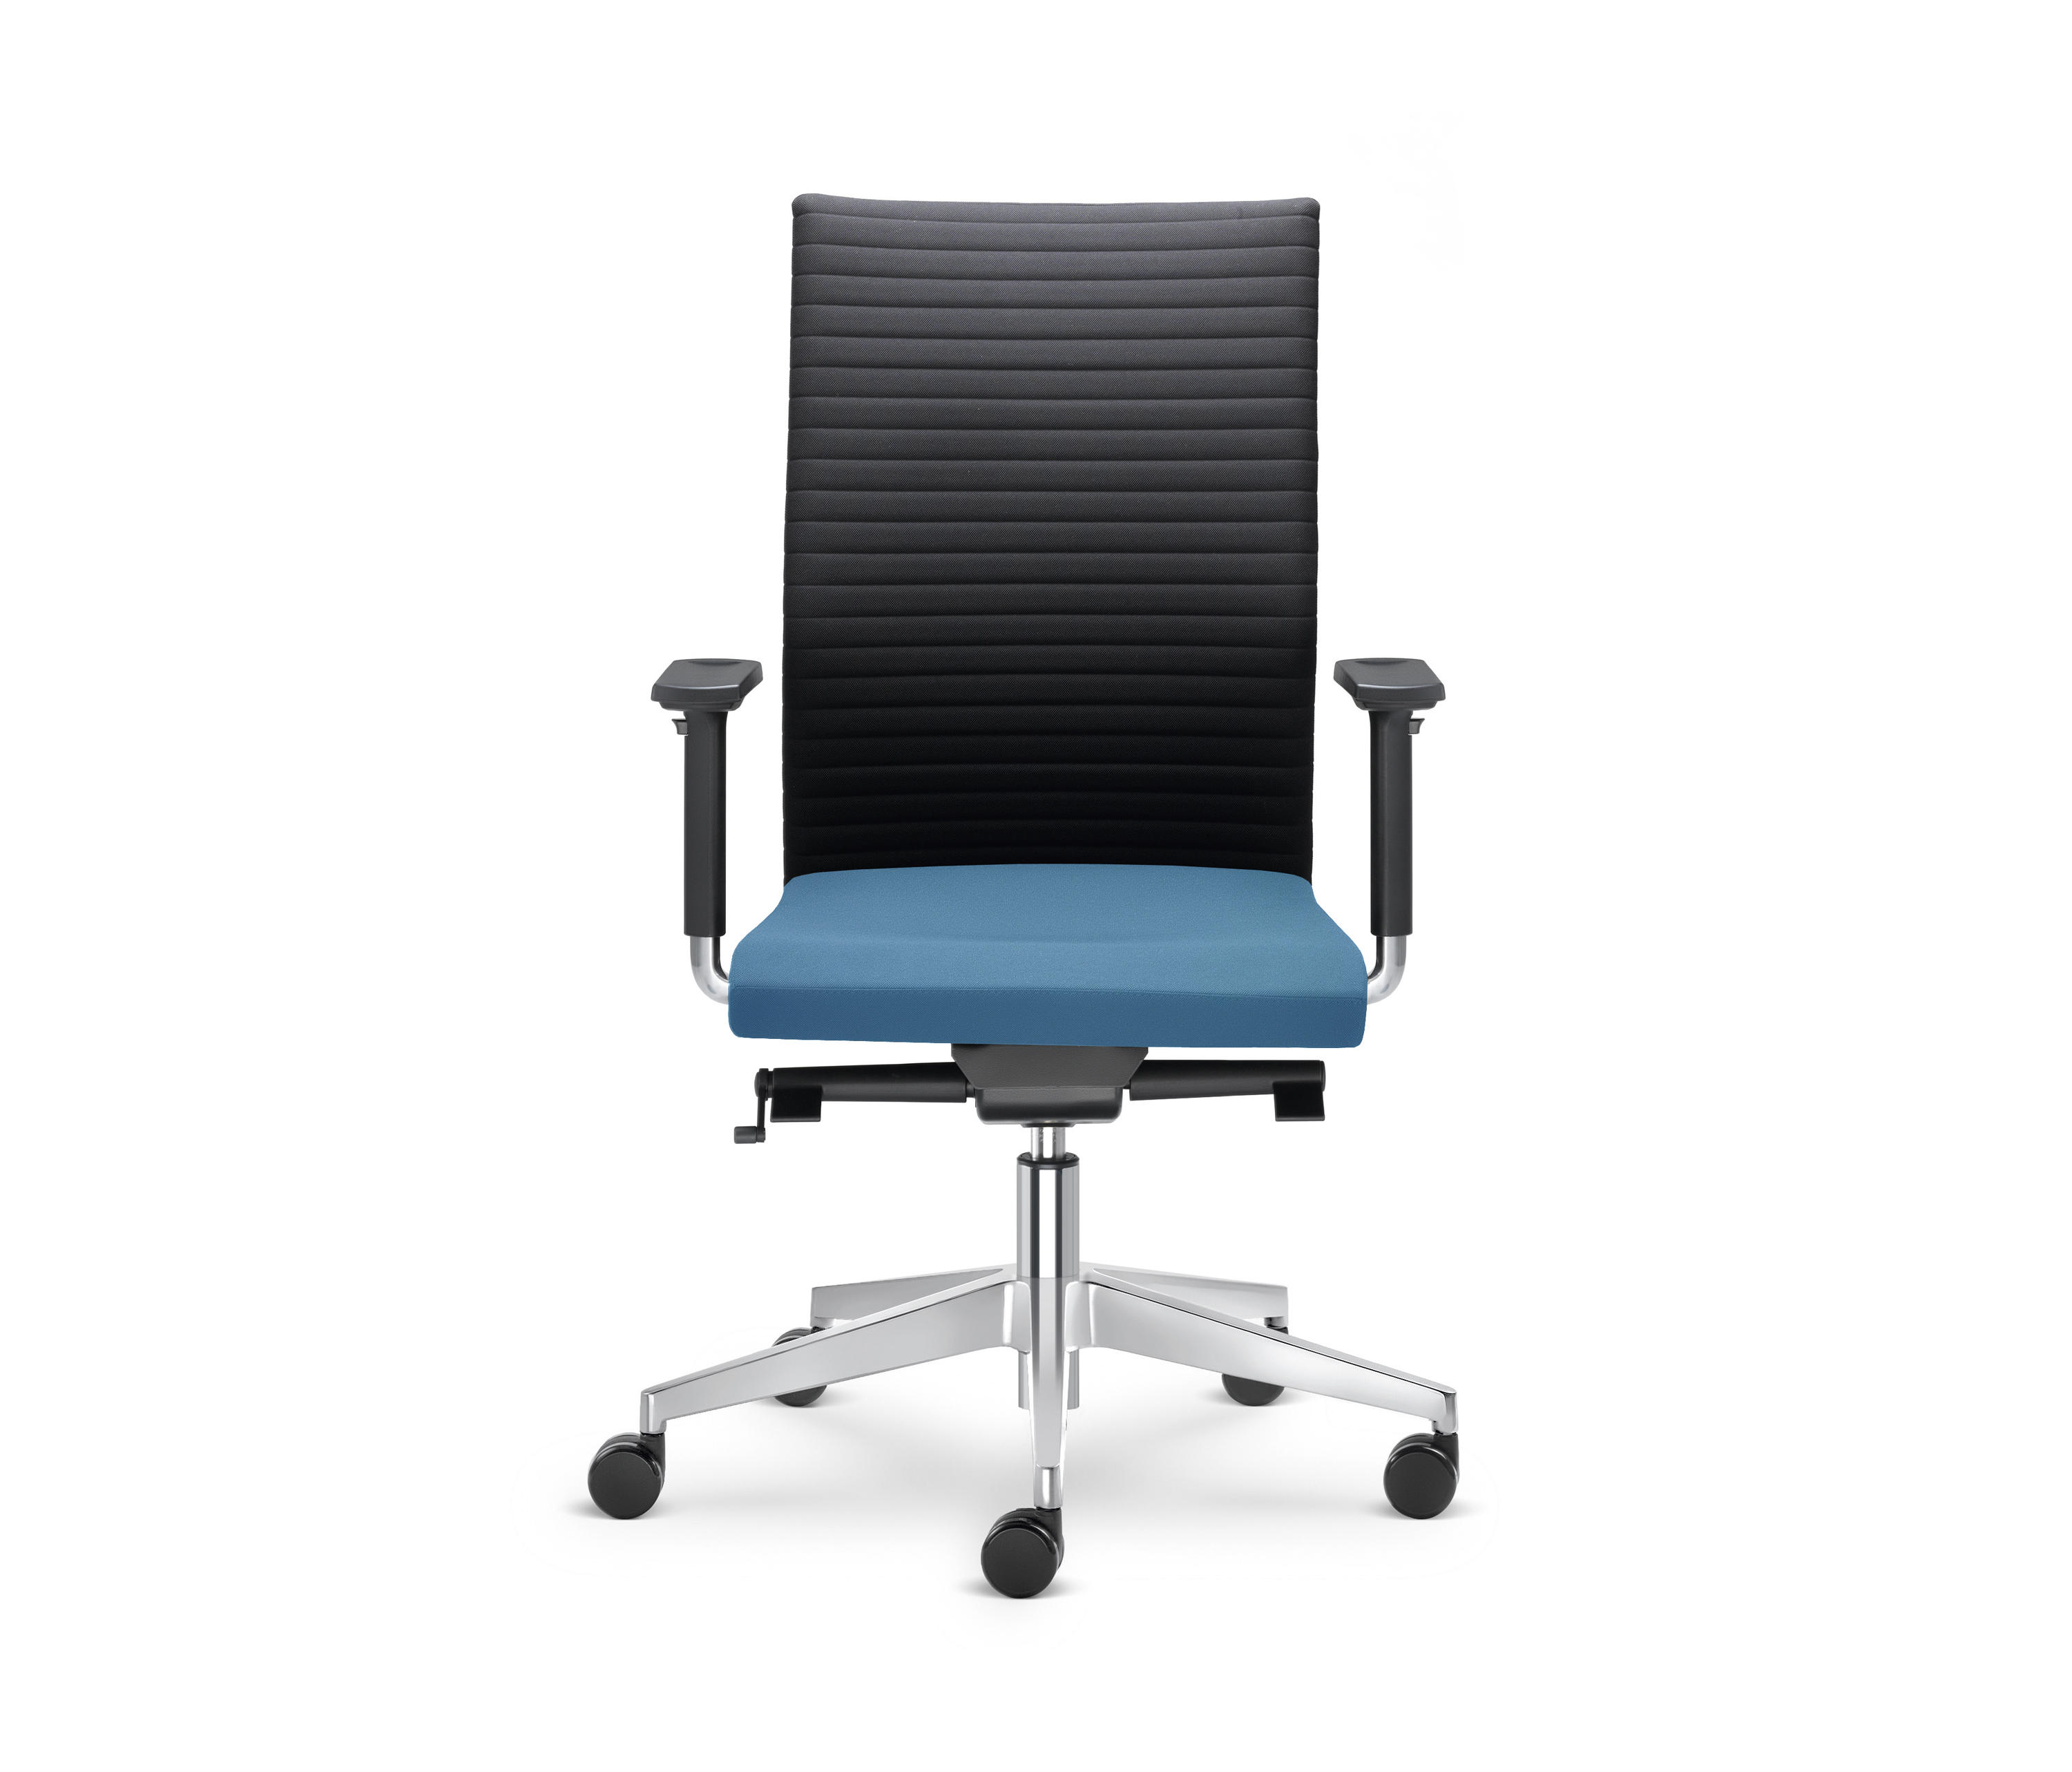 Element 430 Stühle Von Ld Seating Architonic